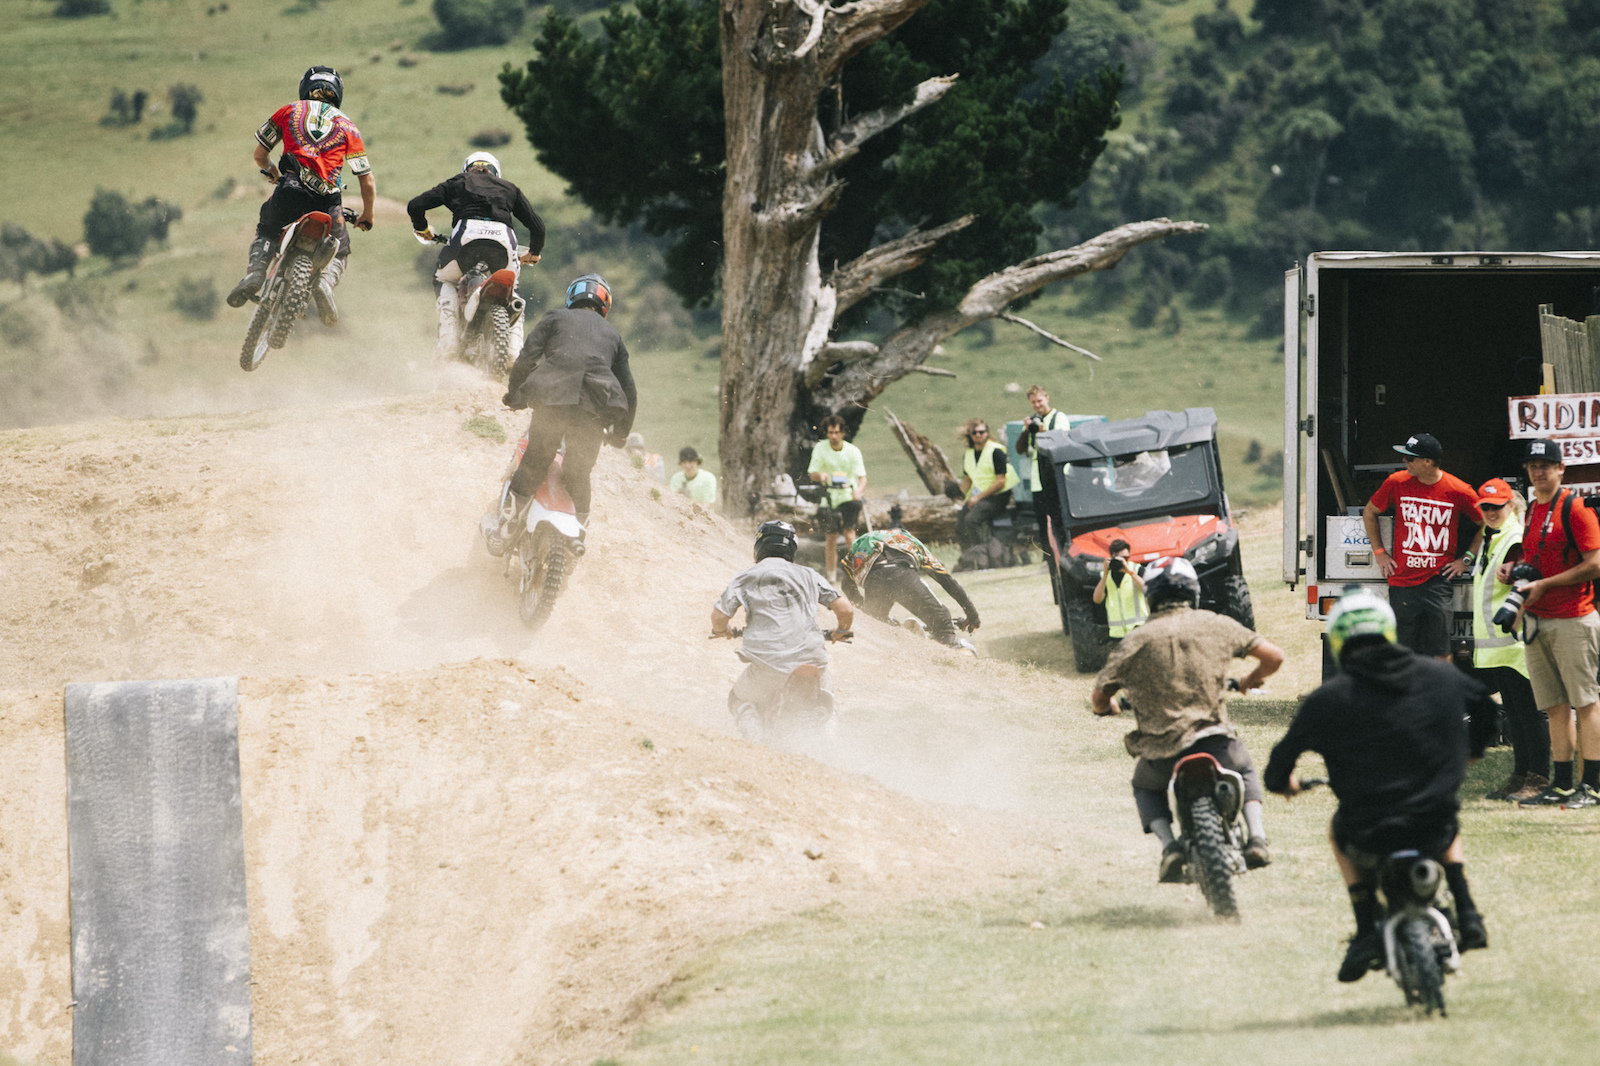 mini motocross the Frew s Farm Jam 2020 Otapiri Gorge New Zealand